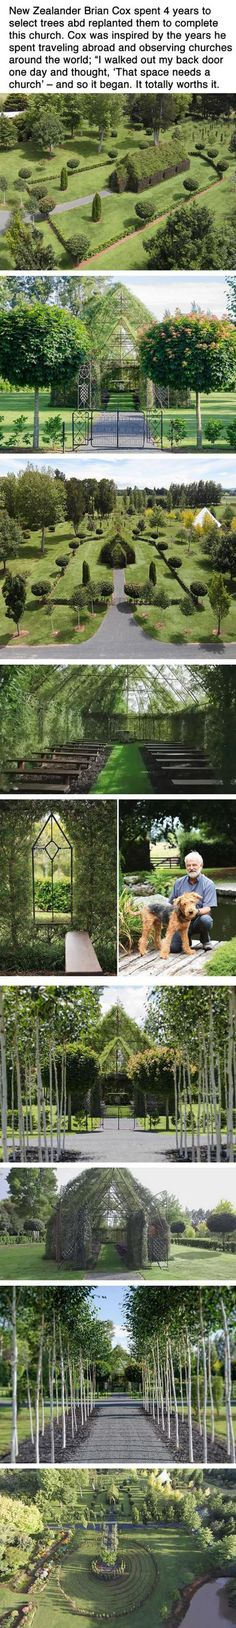 This Man Spent Four Years Growing A Church From Trees